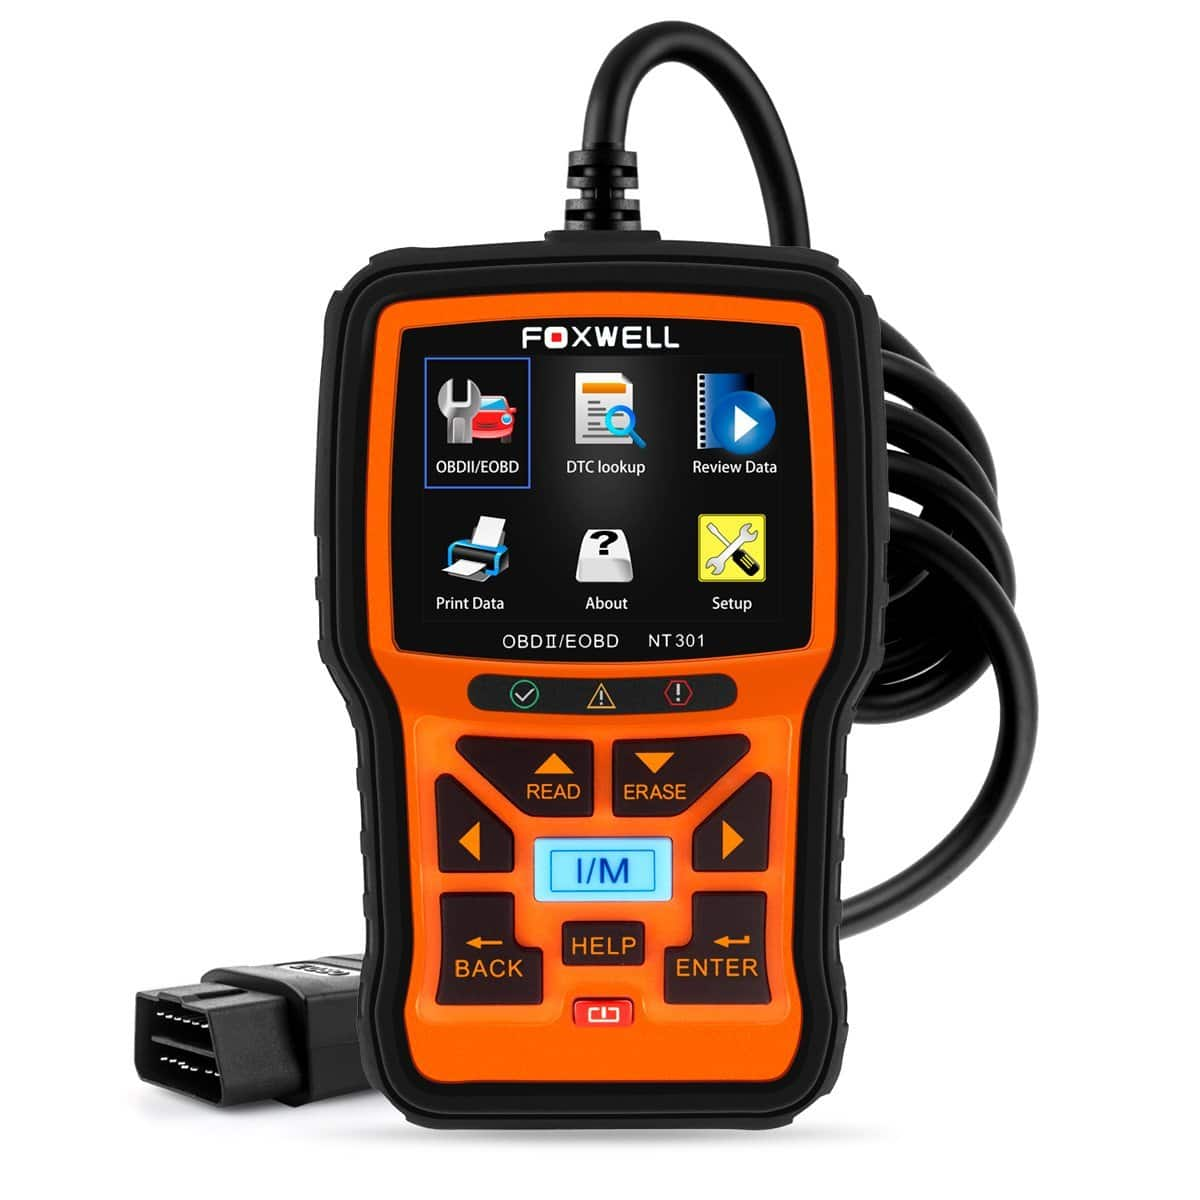 FOXWELL NT301 Car Obd2 Code Scanner $55.99 + Free Shipping @Amazon